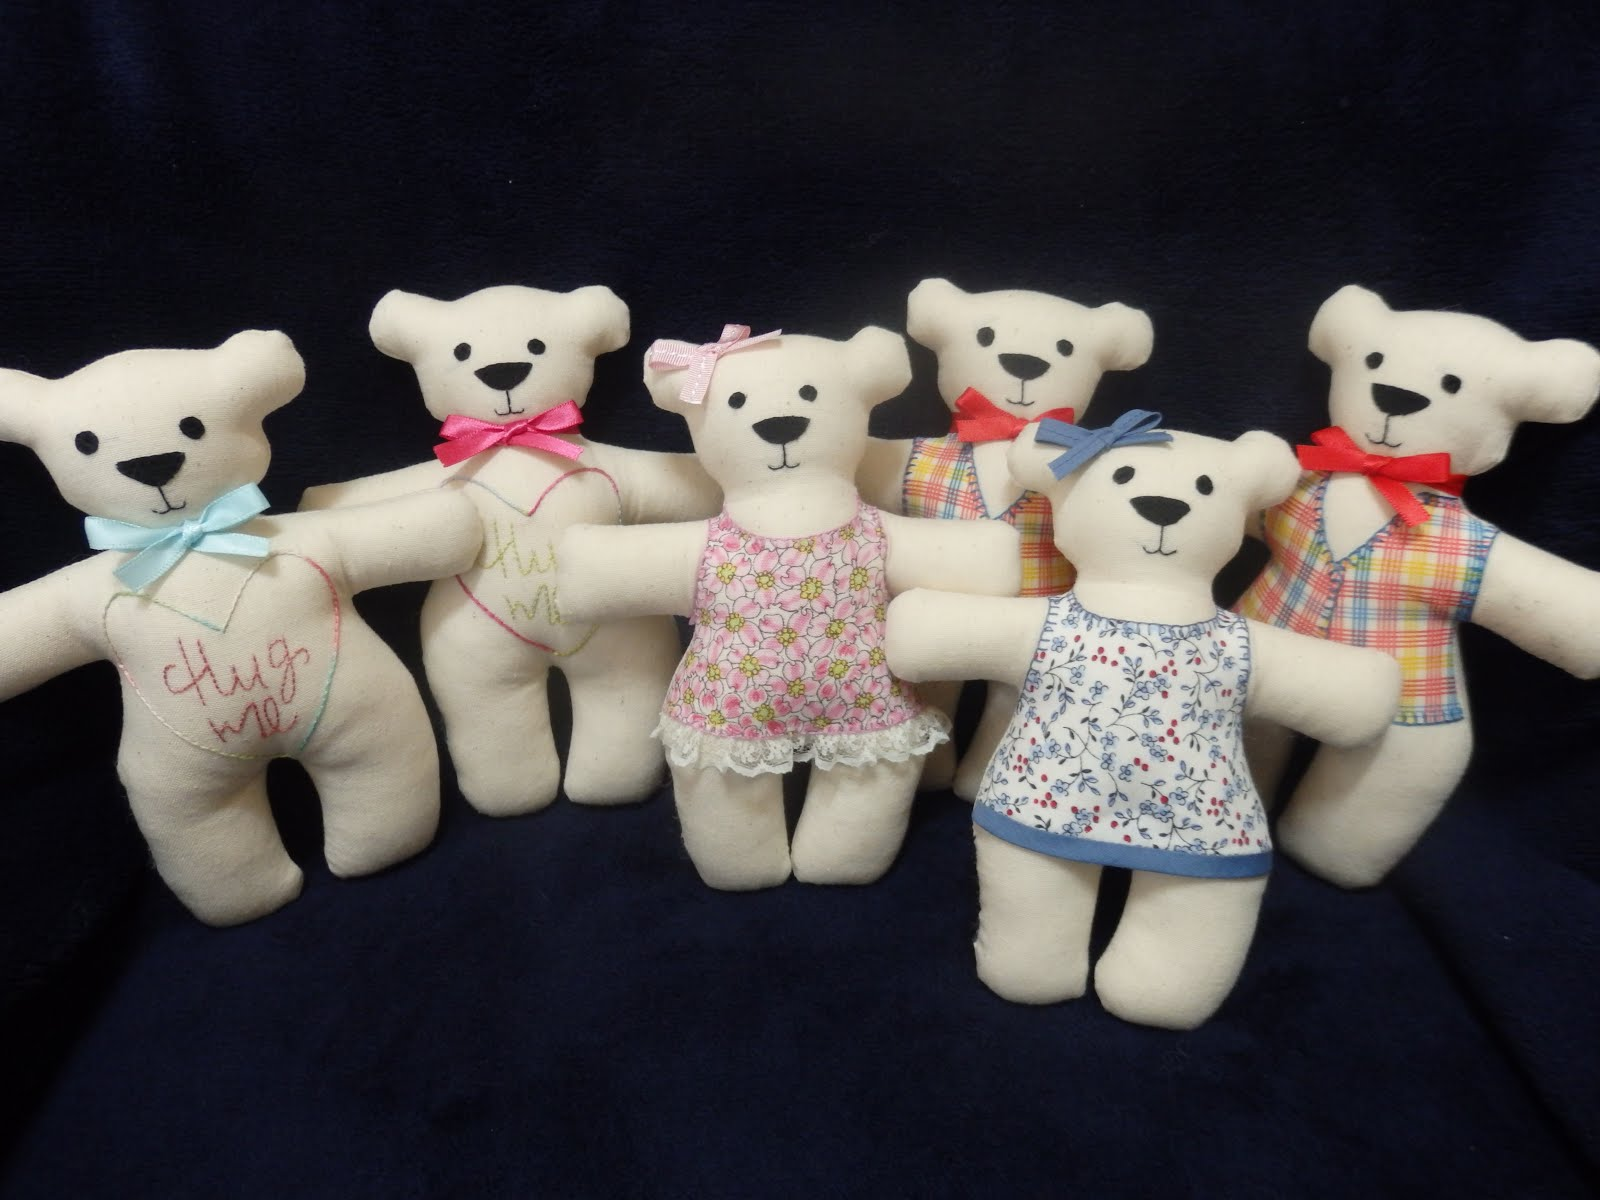 AMEA Randem Act of Kindness Bears - spreading love one bear at a time